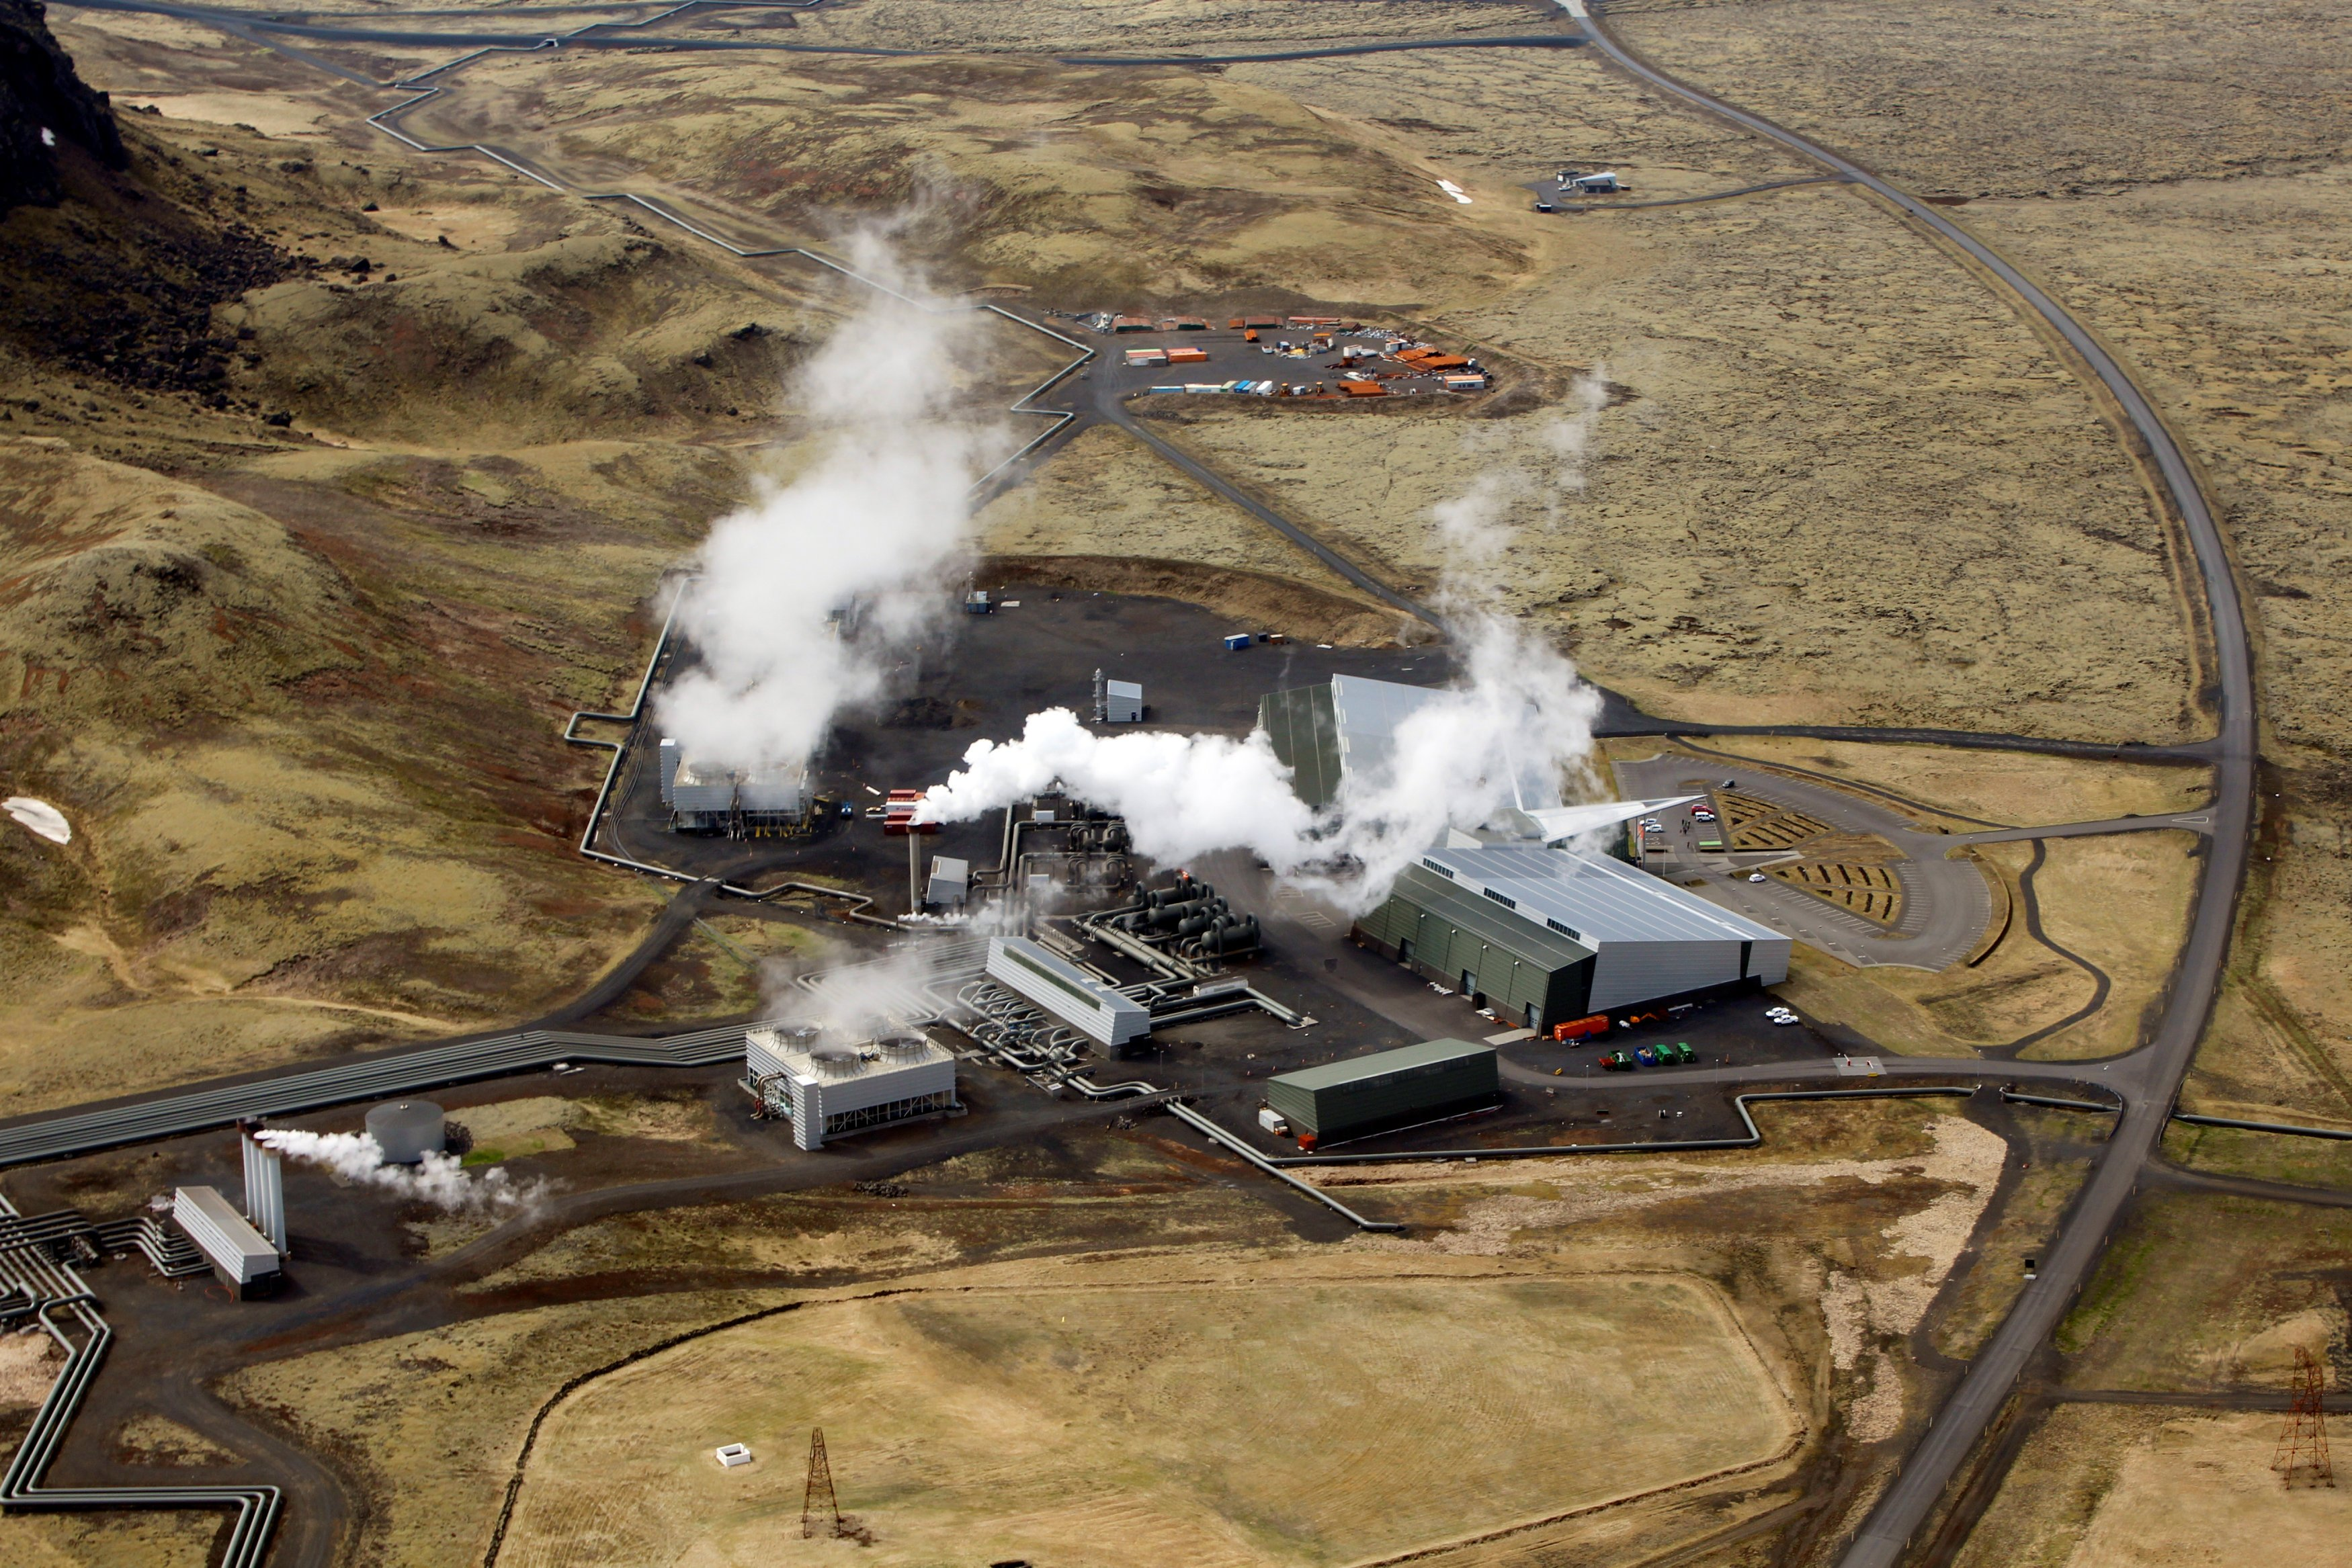 An aerial view of Hellisheidi geothermal power station near Reykjavik, Iceland, June 4, 2016. Picture taken June 4, 2016. REUTERS/Jemima Kelly